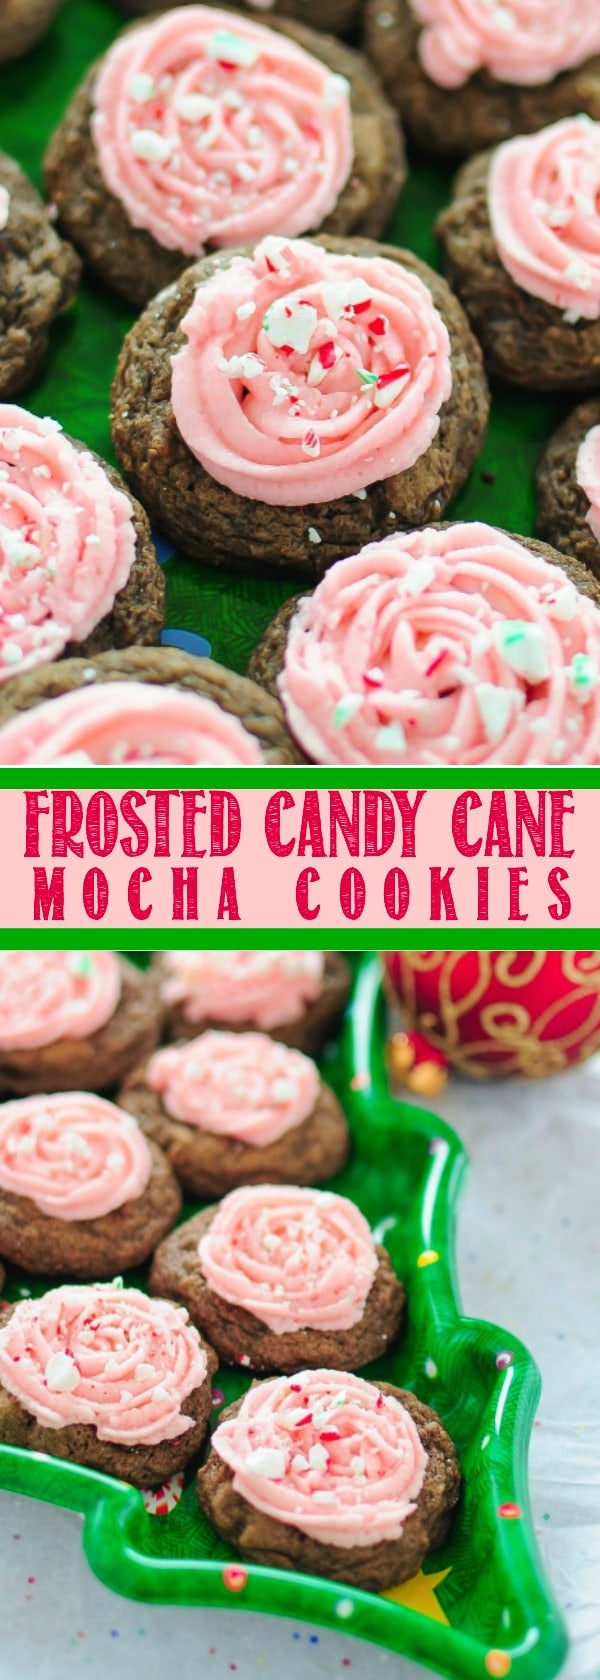 Frosted Peppermint Mocha Cookies with Candy Canes!